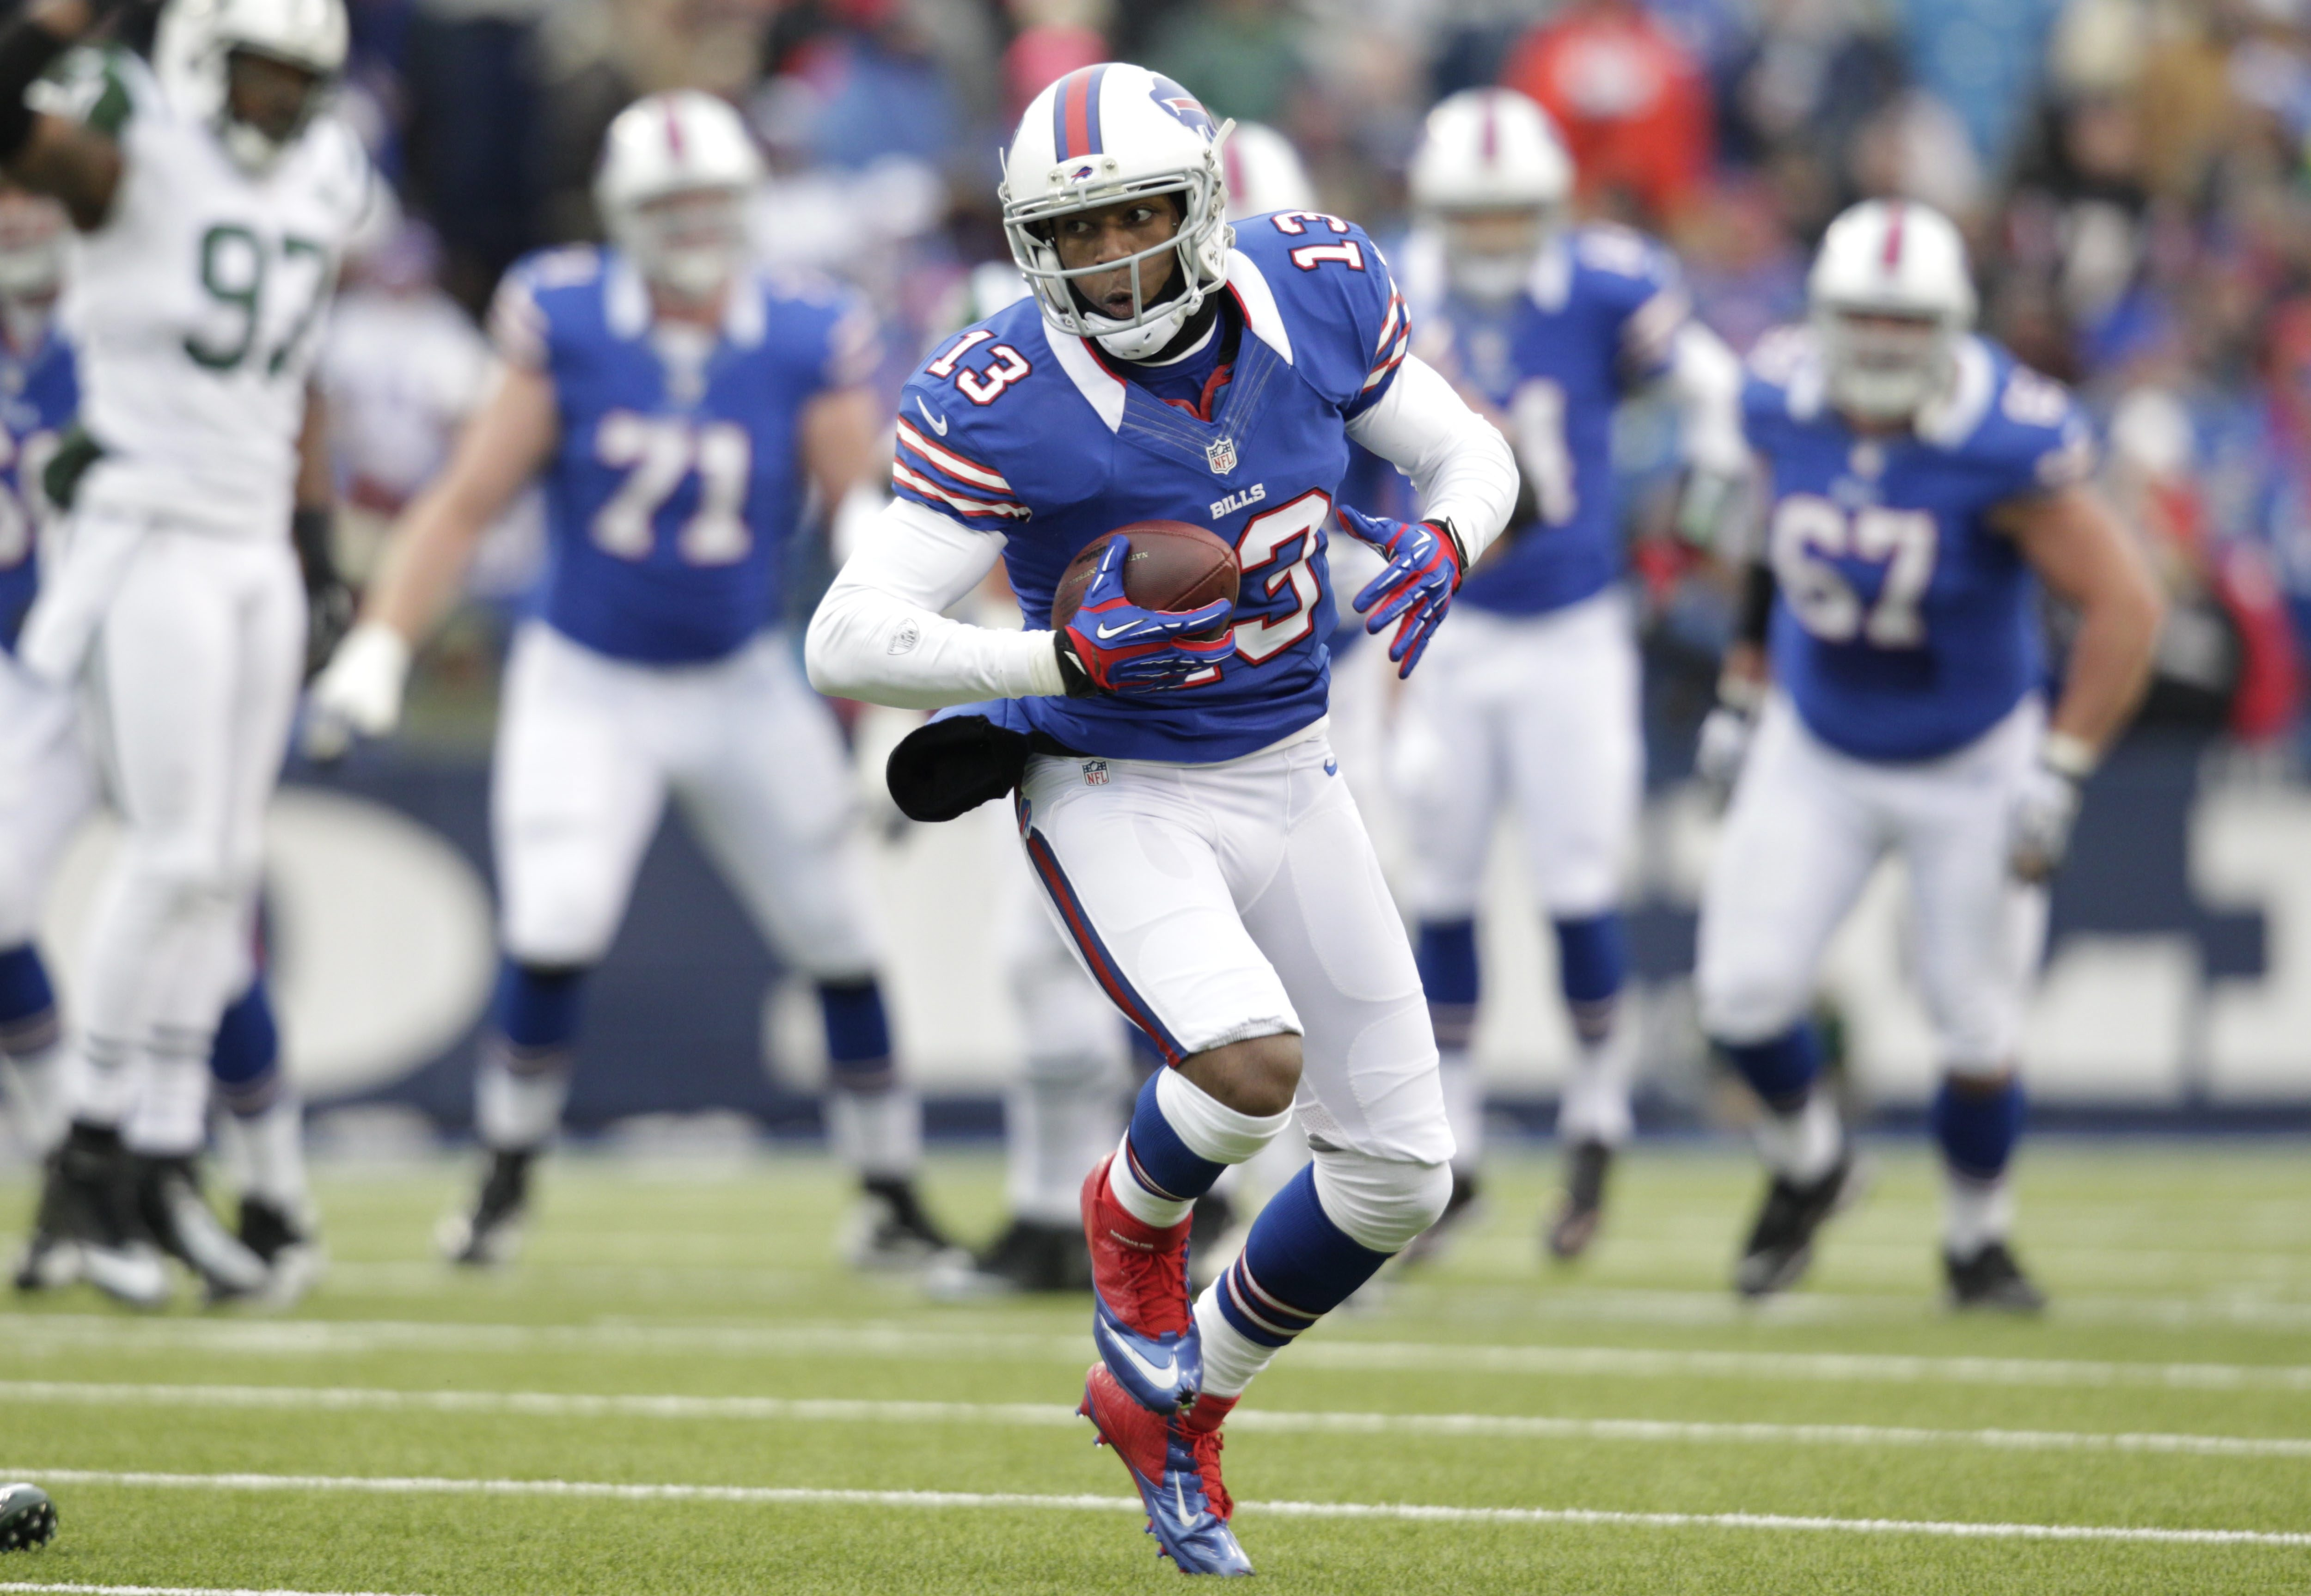 Stevie Johnson said his tweet a few weeks ago suggesting that North Korea bomb Foxborough is 'a tough one to deal with' after Monday.